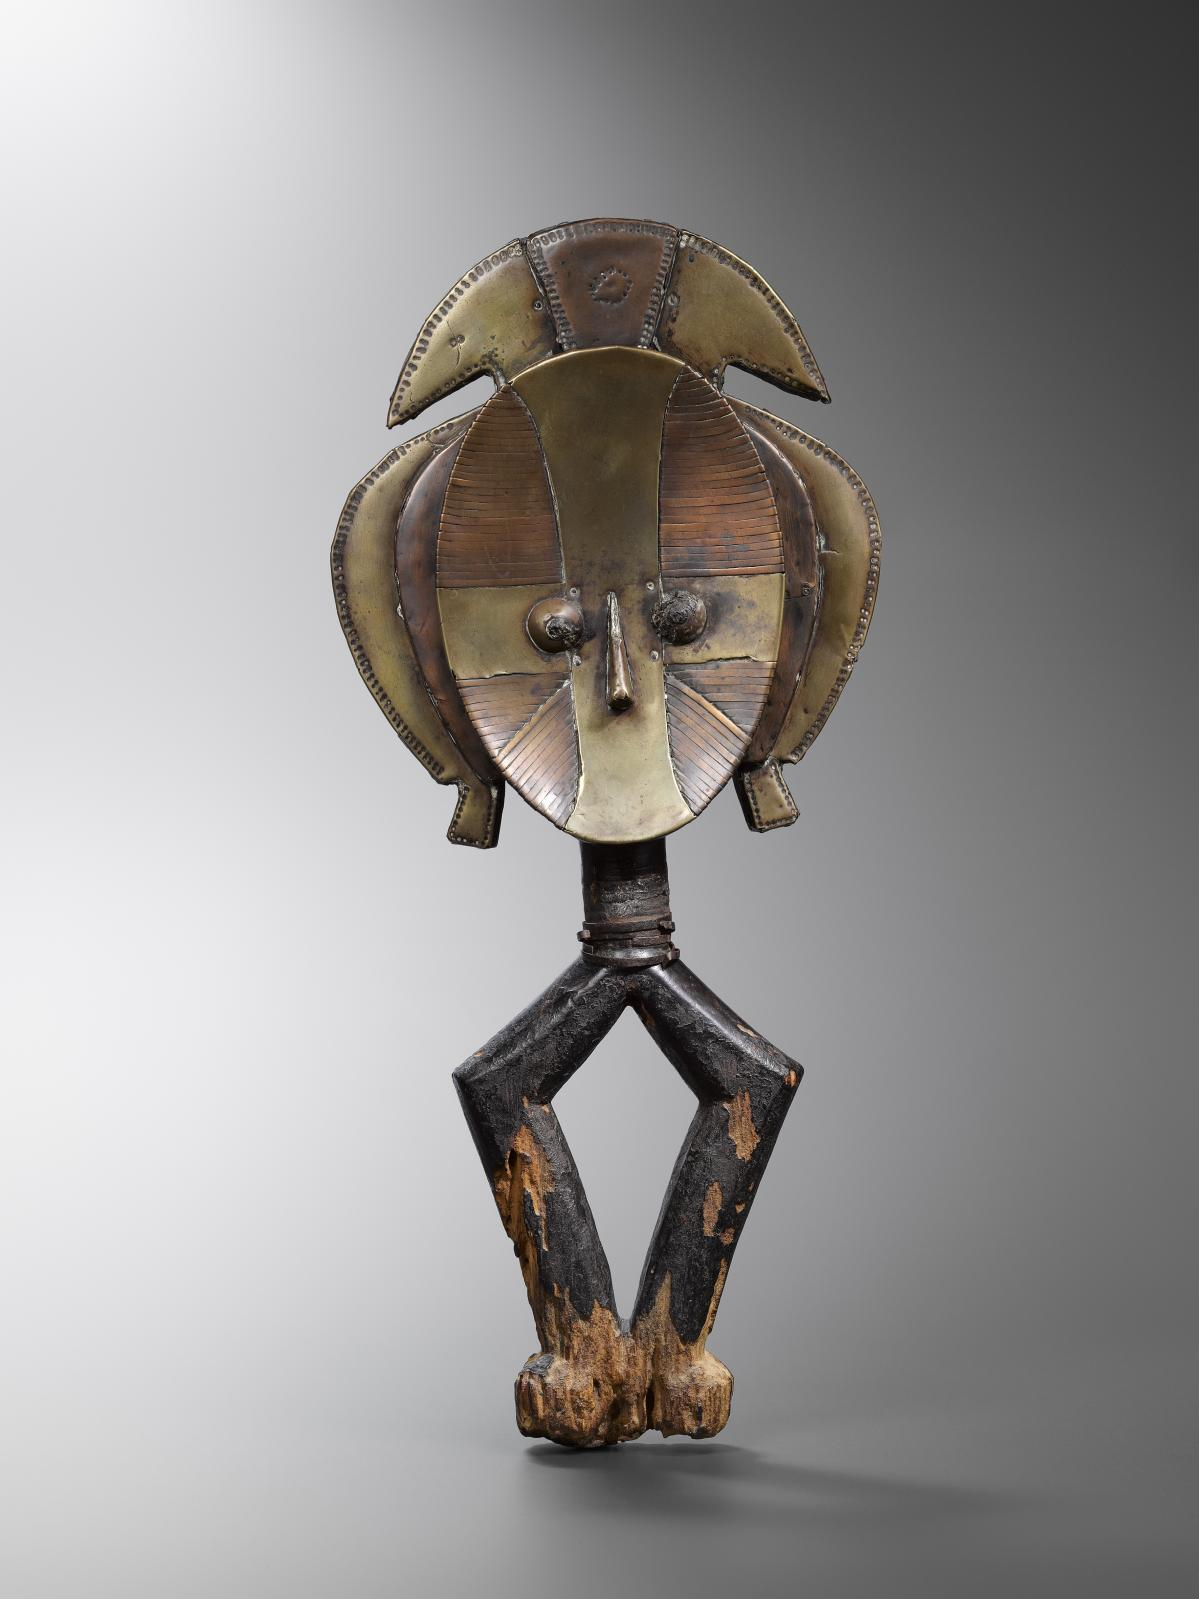 La célèbre figure de reliquaire Kota du Gabon provenant de la collection Hubert Goldet. © Hughes Dubois